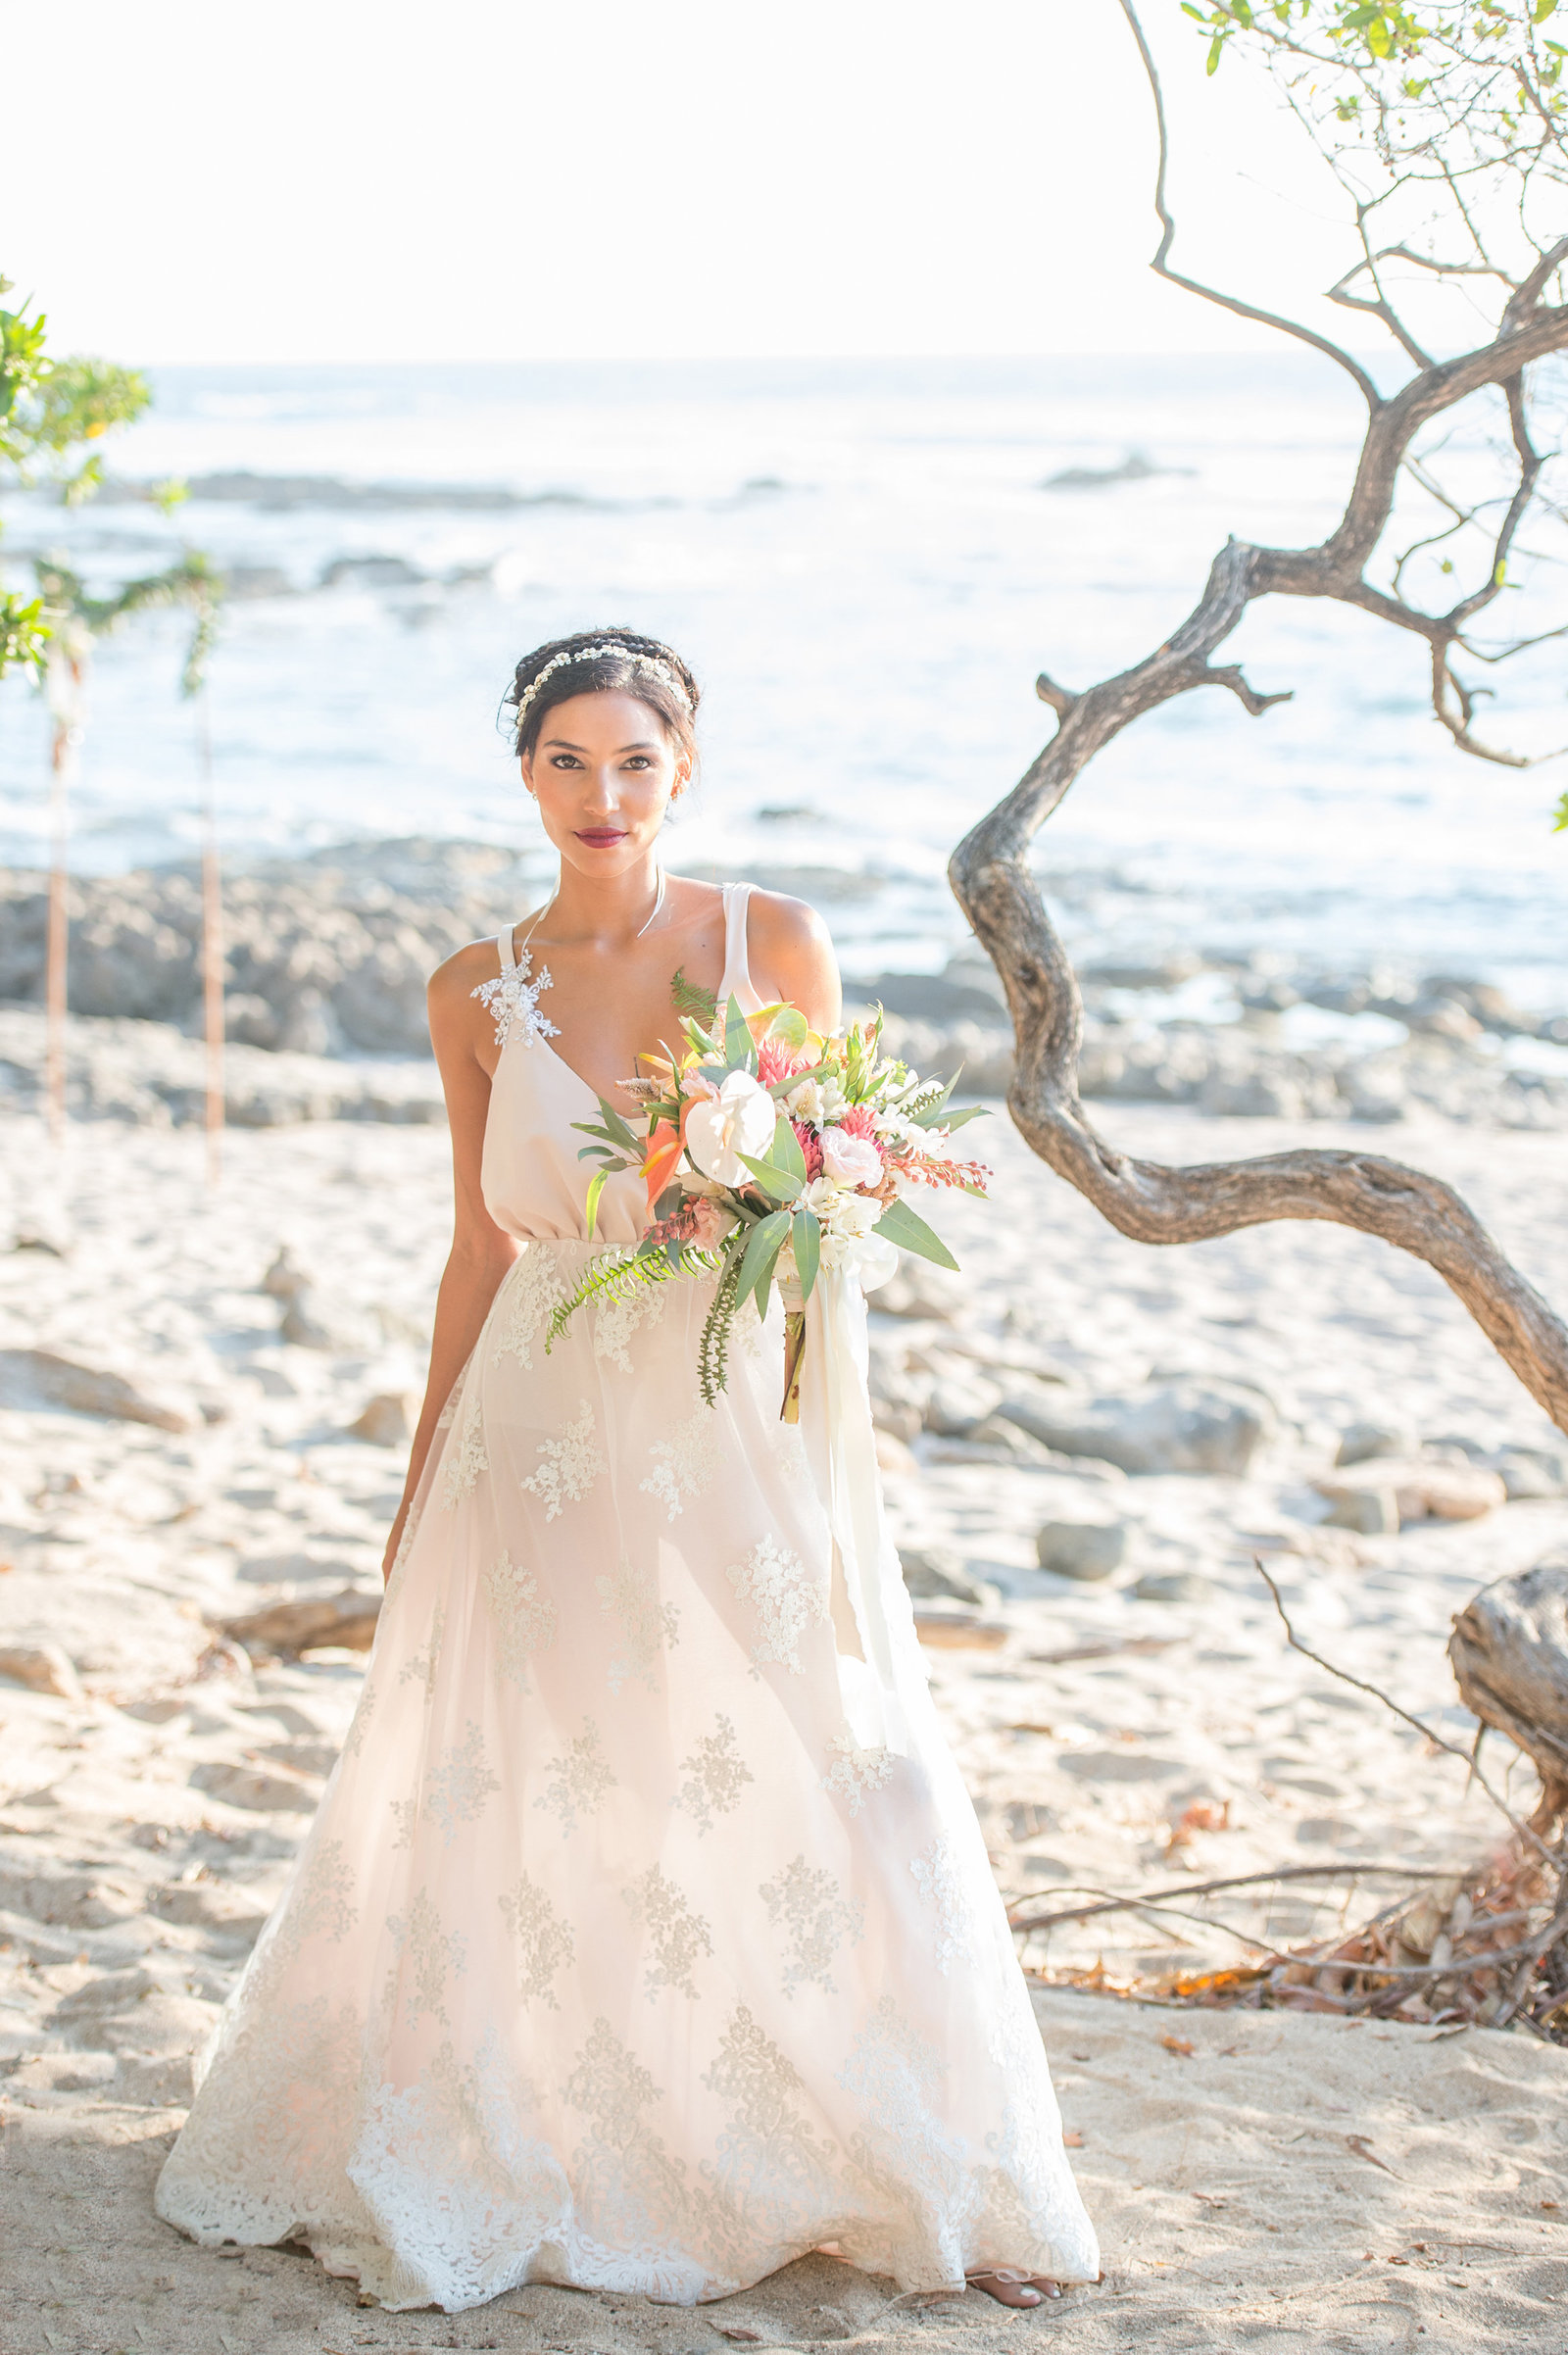 02-Destination Wedding Photography - Costa Rica Wedding Photographers - 17